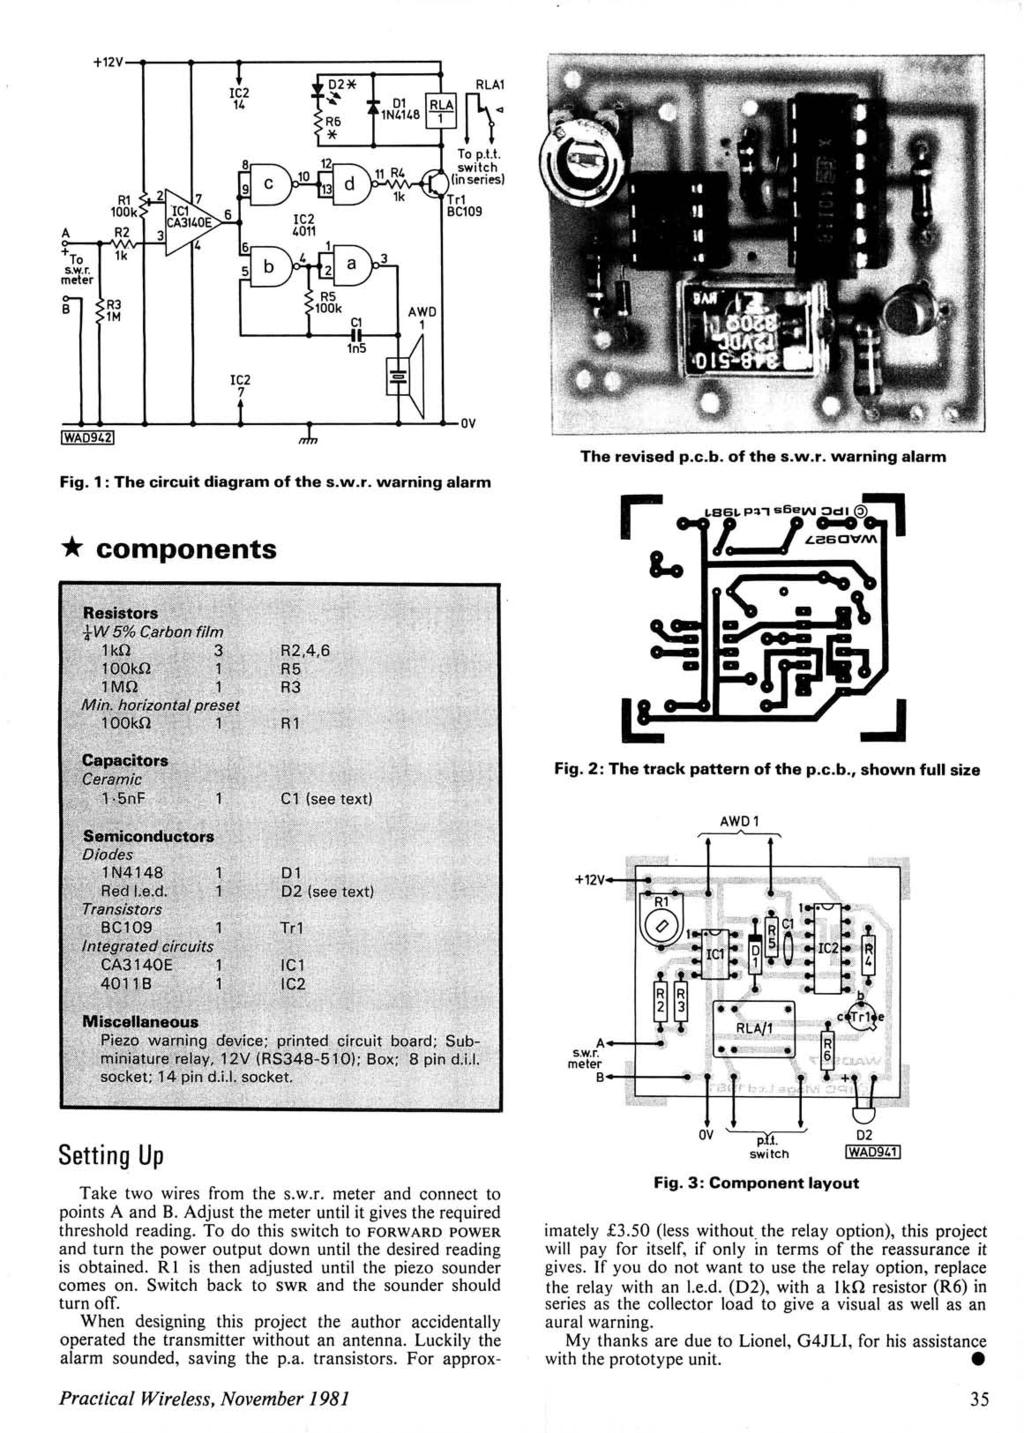 Lcssa Cf Aoic Teams 16m 23 H F Band 2n2907 In The Reverse Unit Project Schematic Circuit Diagram And Datasheet 12v Ry Rlal A To Swr Meter B Rl Look R2 Lk R3 Lm